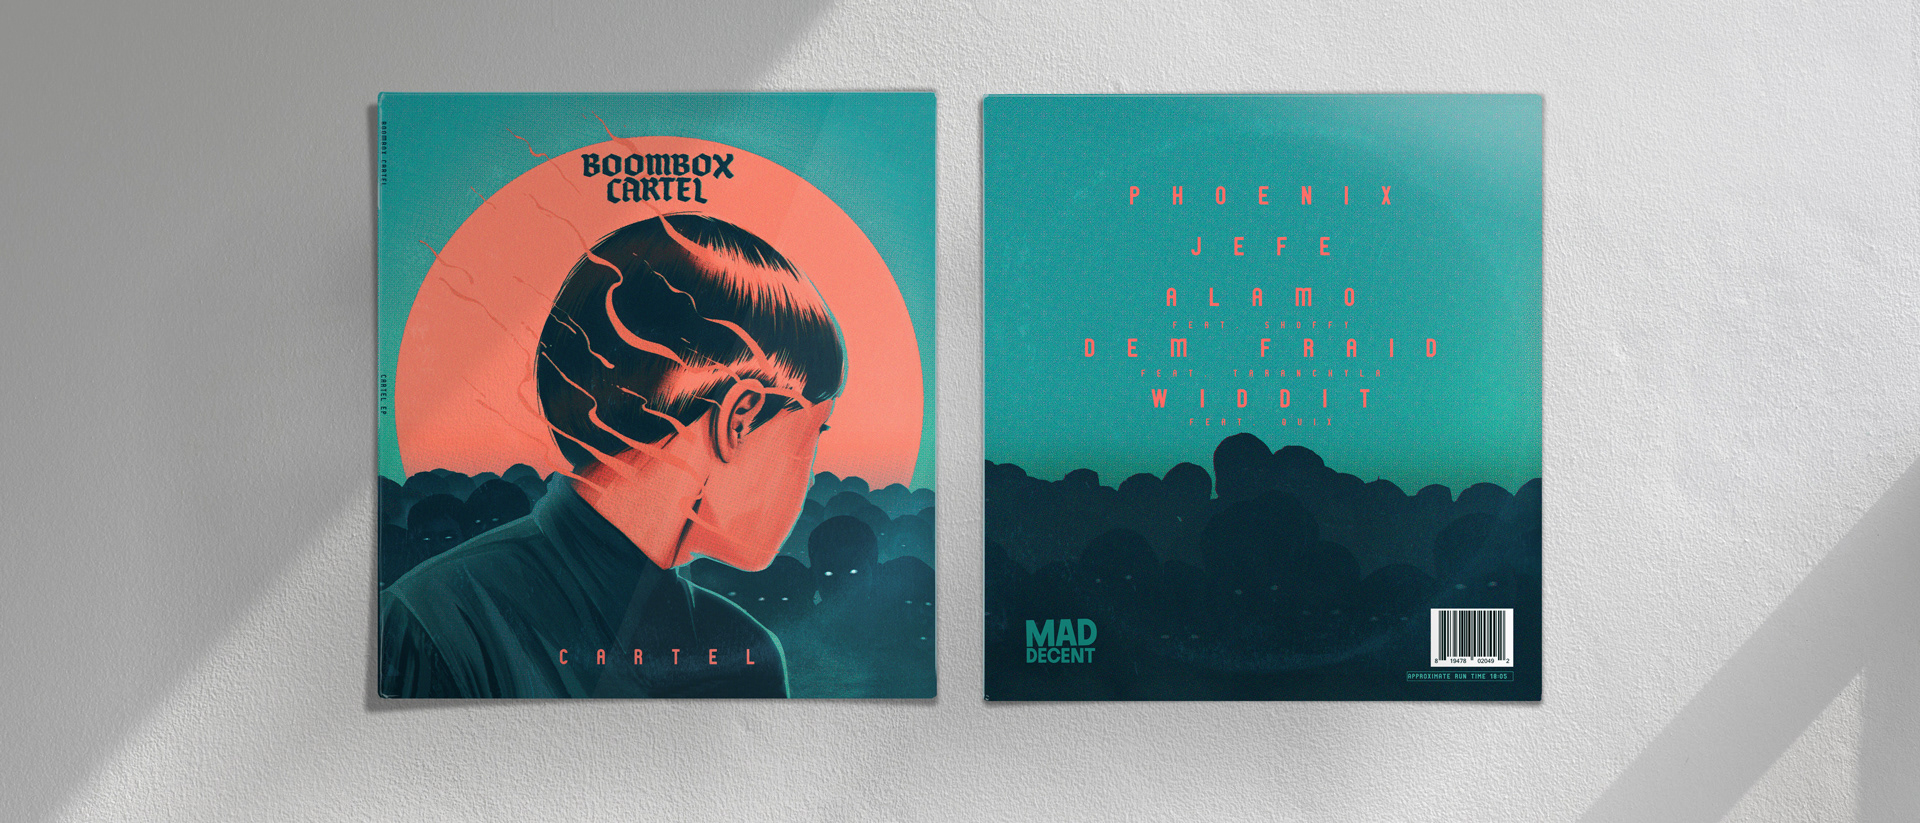 Music Album Cover Illustrations by El Diablo